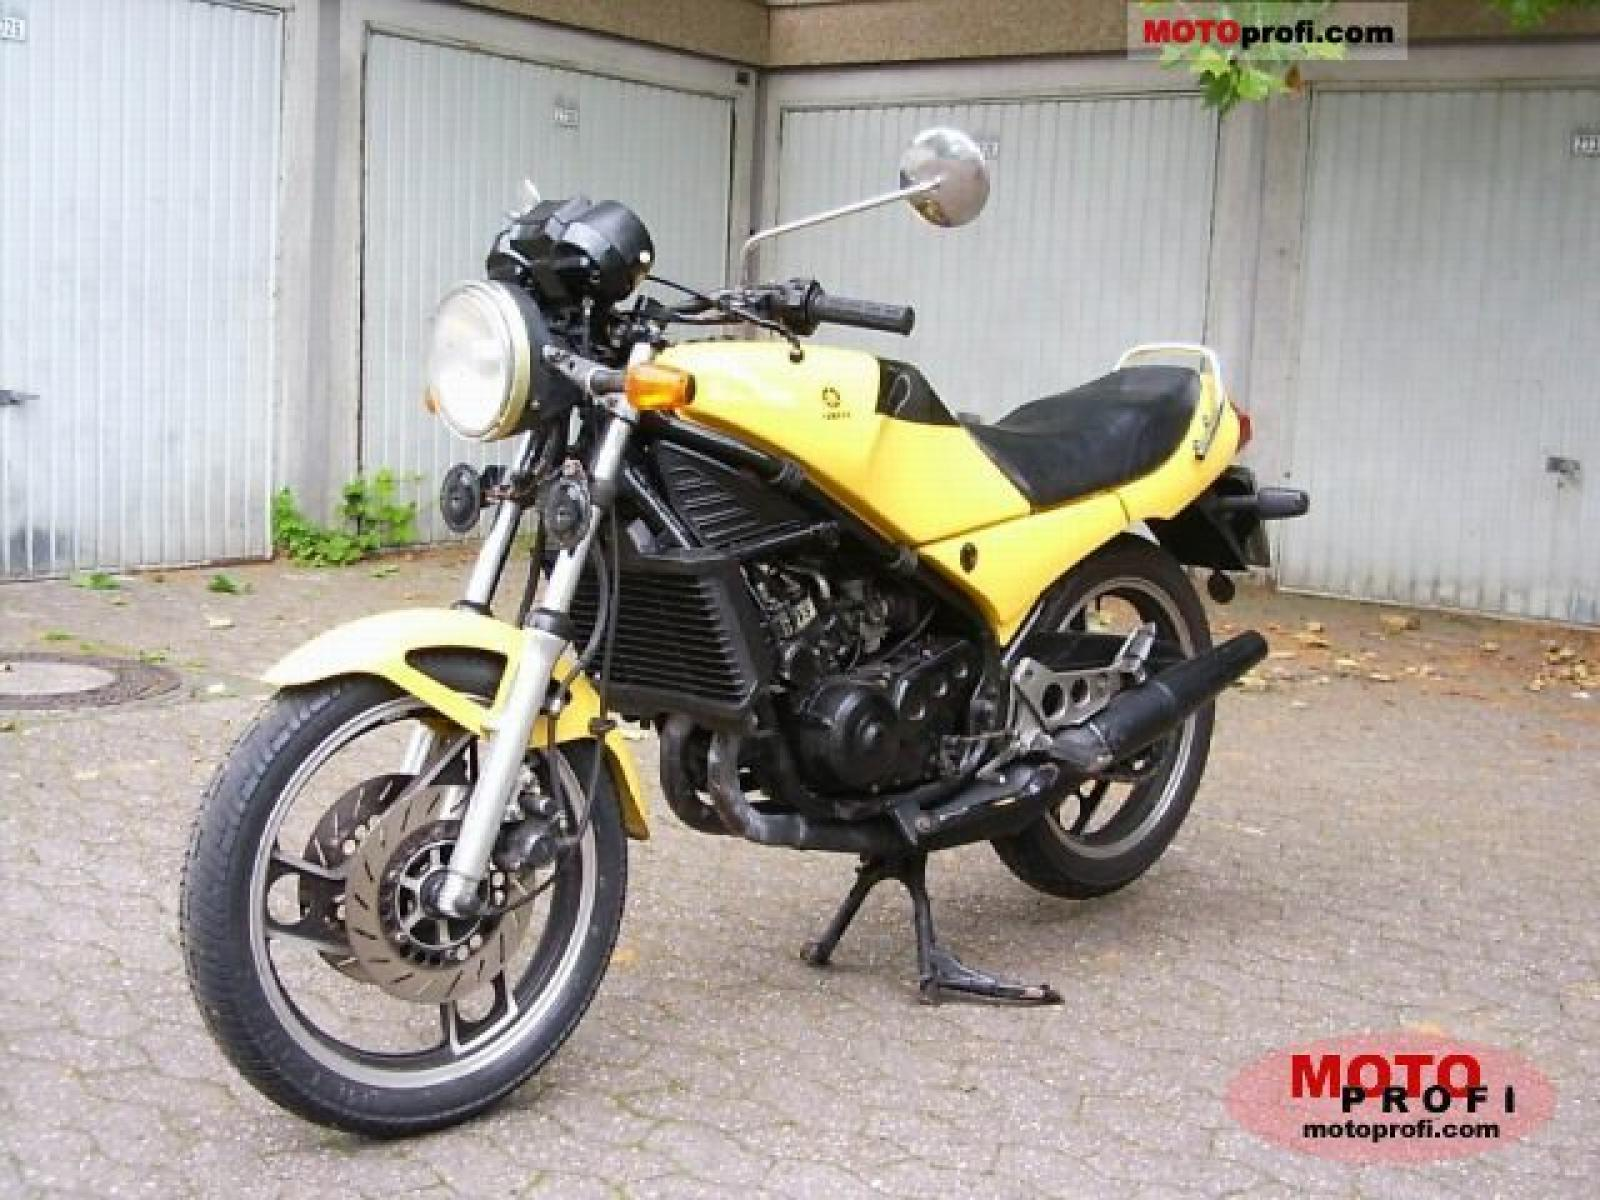 1983 yamaha rd 350 lc ypvs reduced effect moto zombdrive com. Black Bedroom Furniture Sets. Home Design Ideas